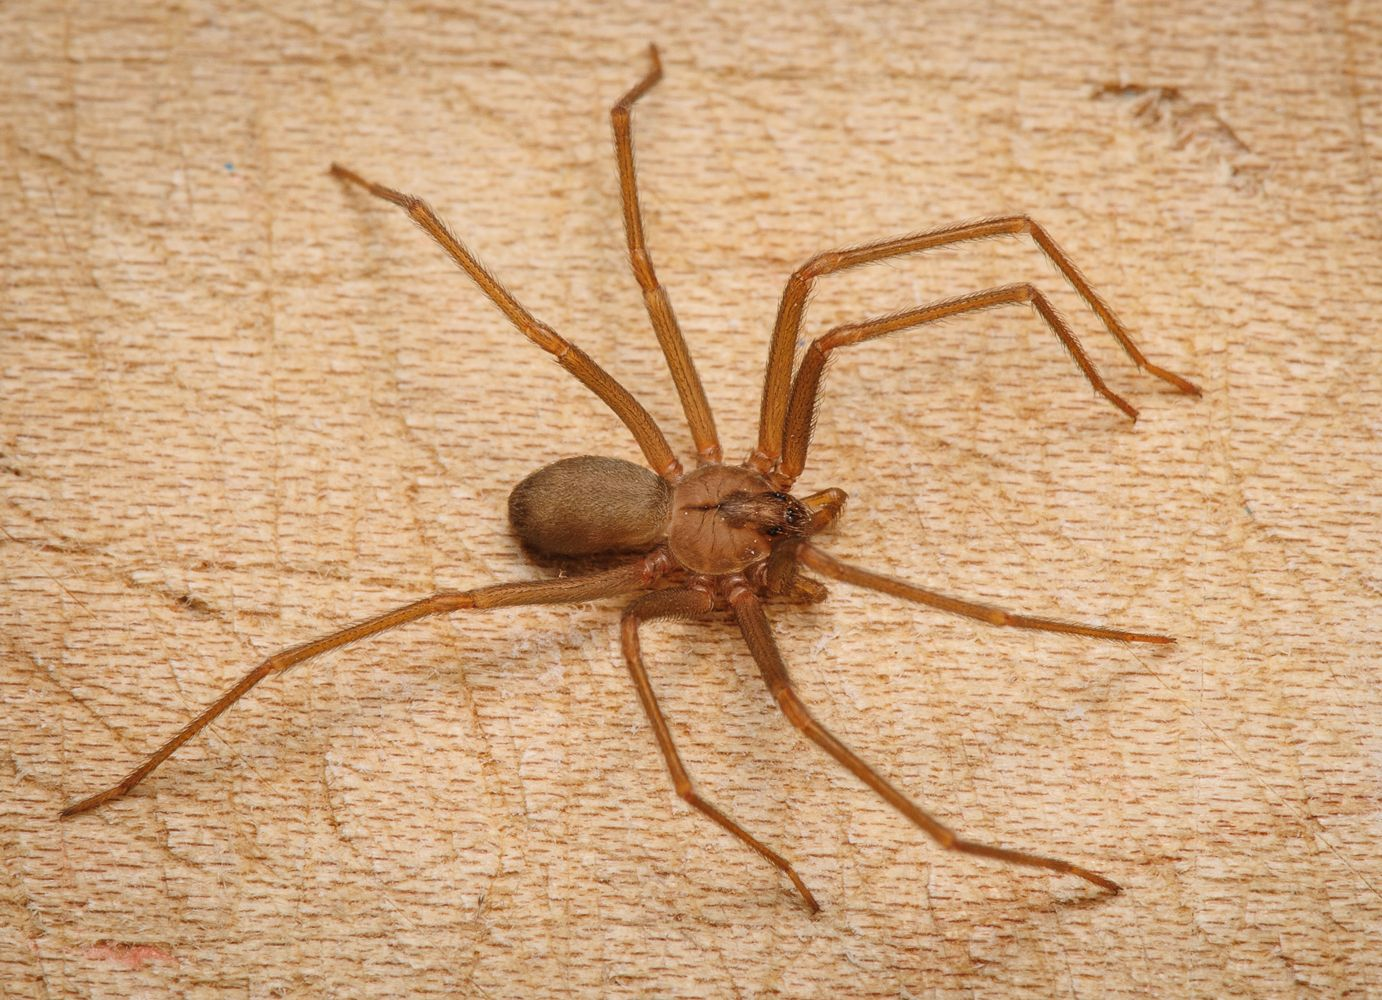 brown recluse images - HD1382×1000